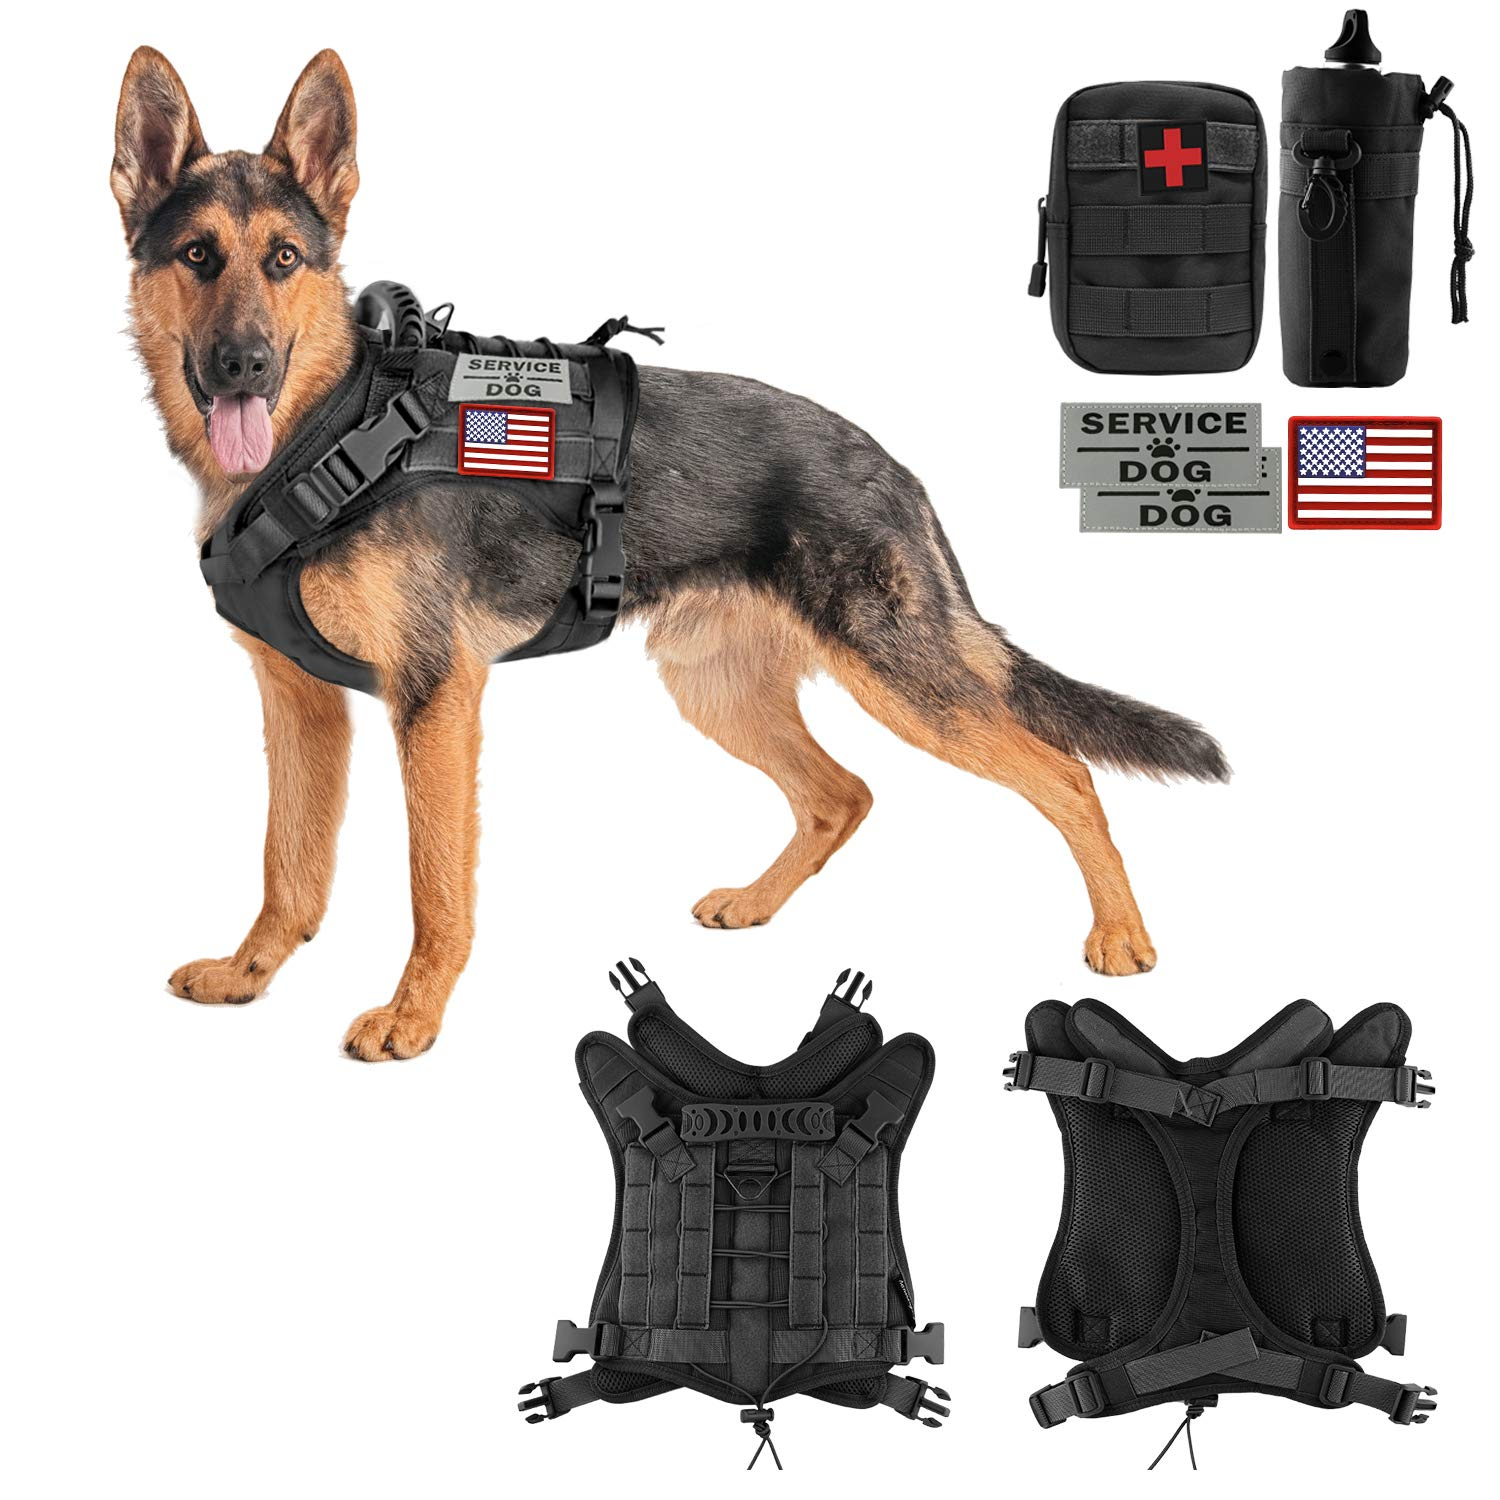 8Black XL 8Black XL Hanshengday Tactical Dog Vest-Training Outdoor Breathable Harness-Military Water-Resistant Dog Backpack-Pet TacticalVest Detachable Pouches-D Ring for Dog Leash (XL, 02Black)